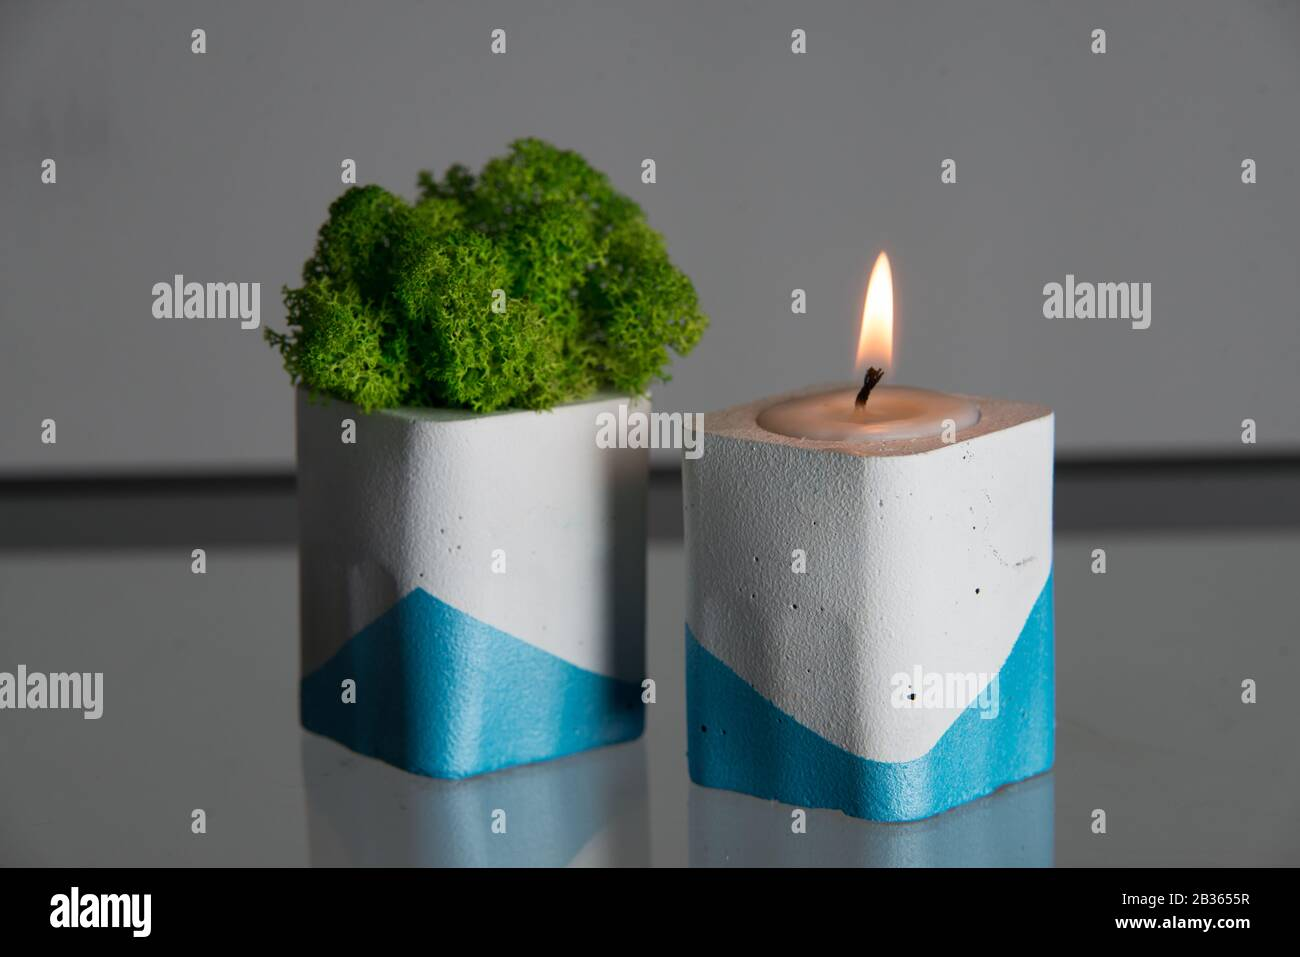 Candle And Moss In White And Blue Concrete Candle Holders Stock Photo Alamy